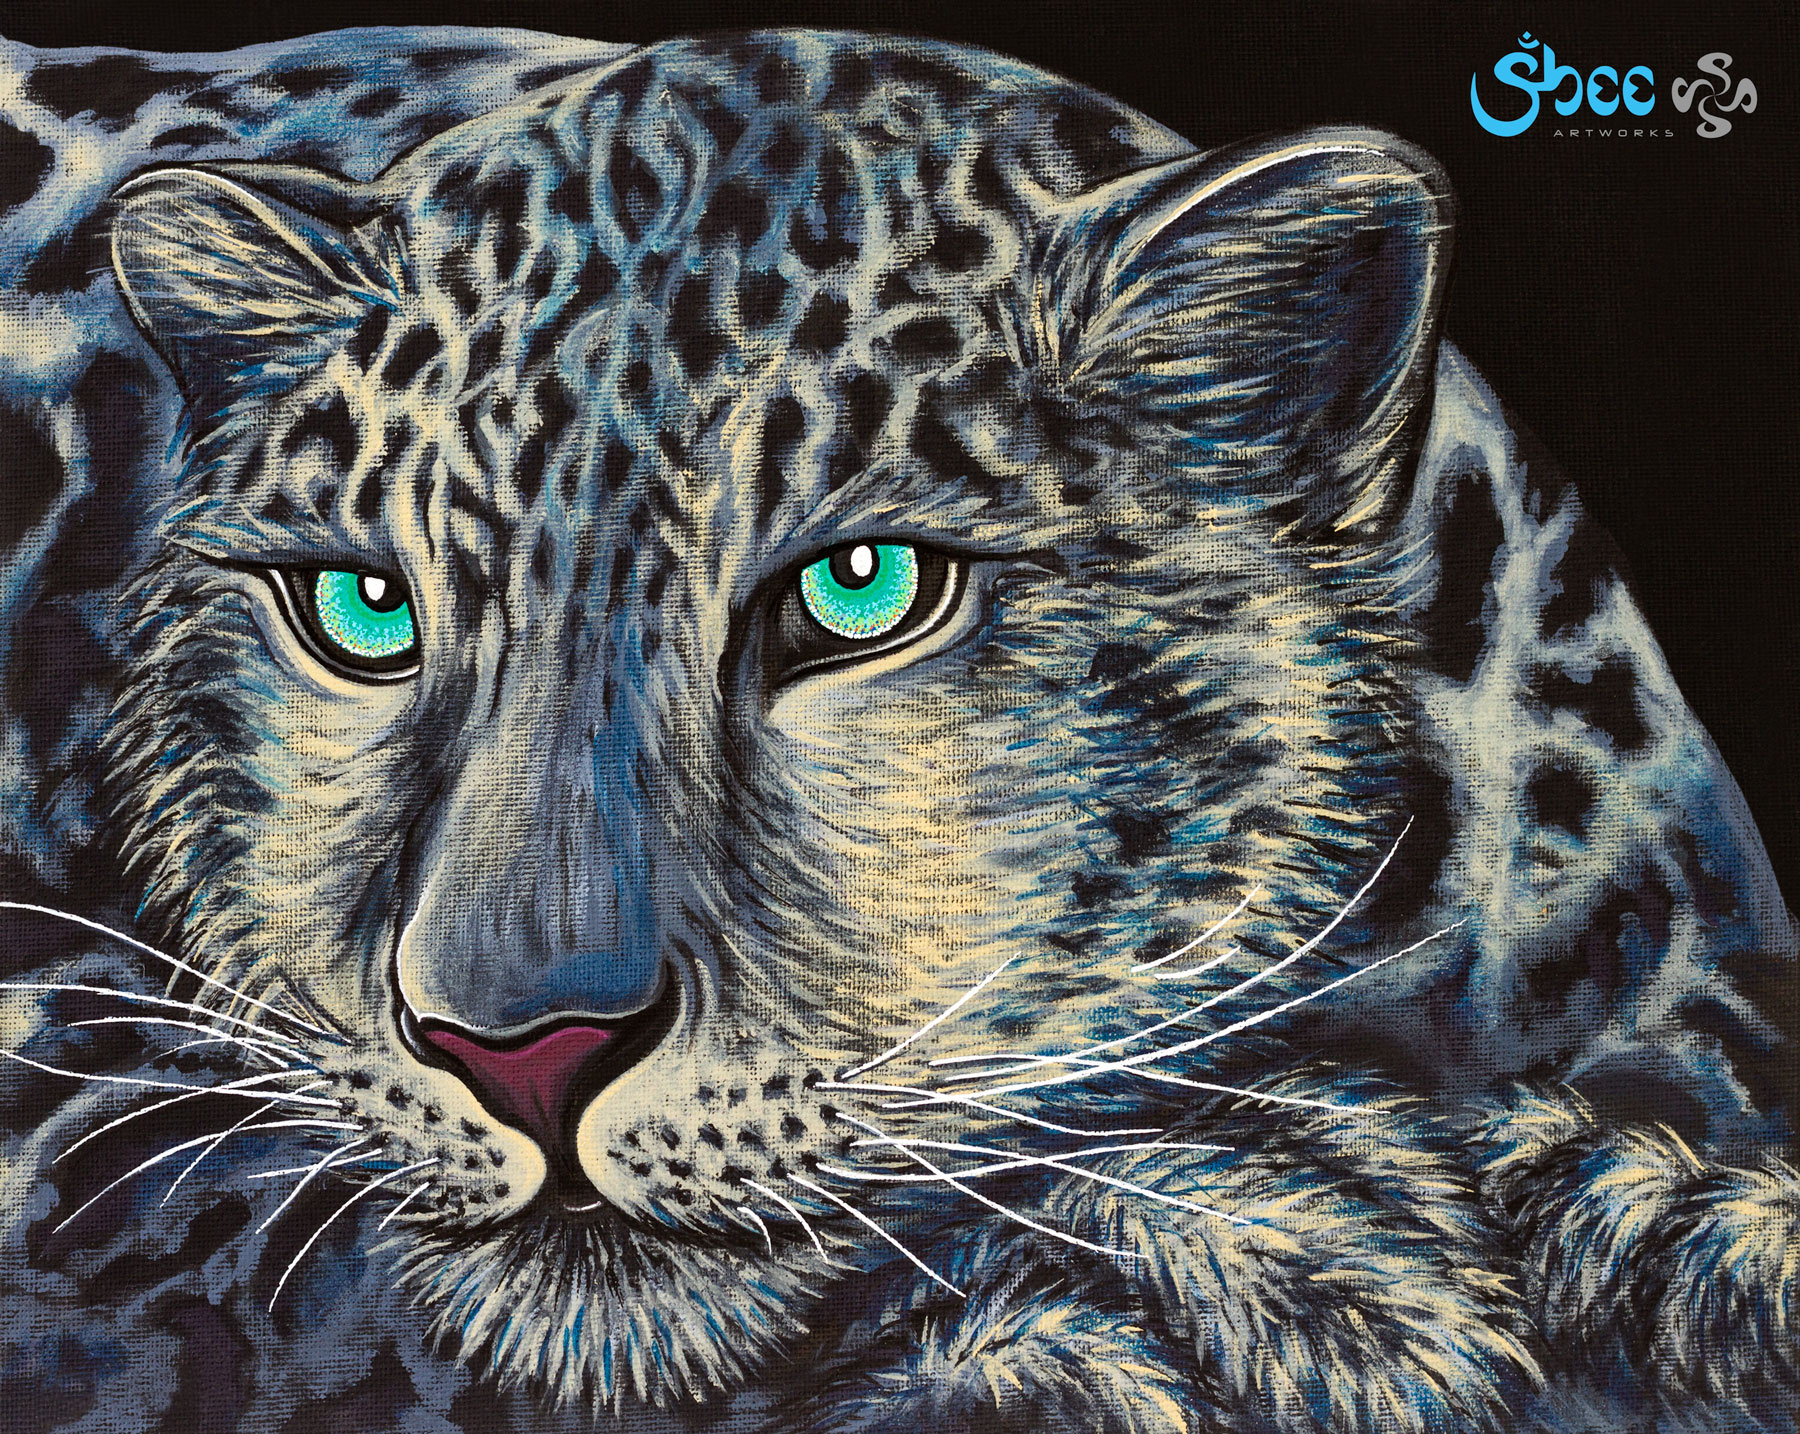 Retro Snow Leopard - acrylic on canvas - 35 x 28 cm